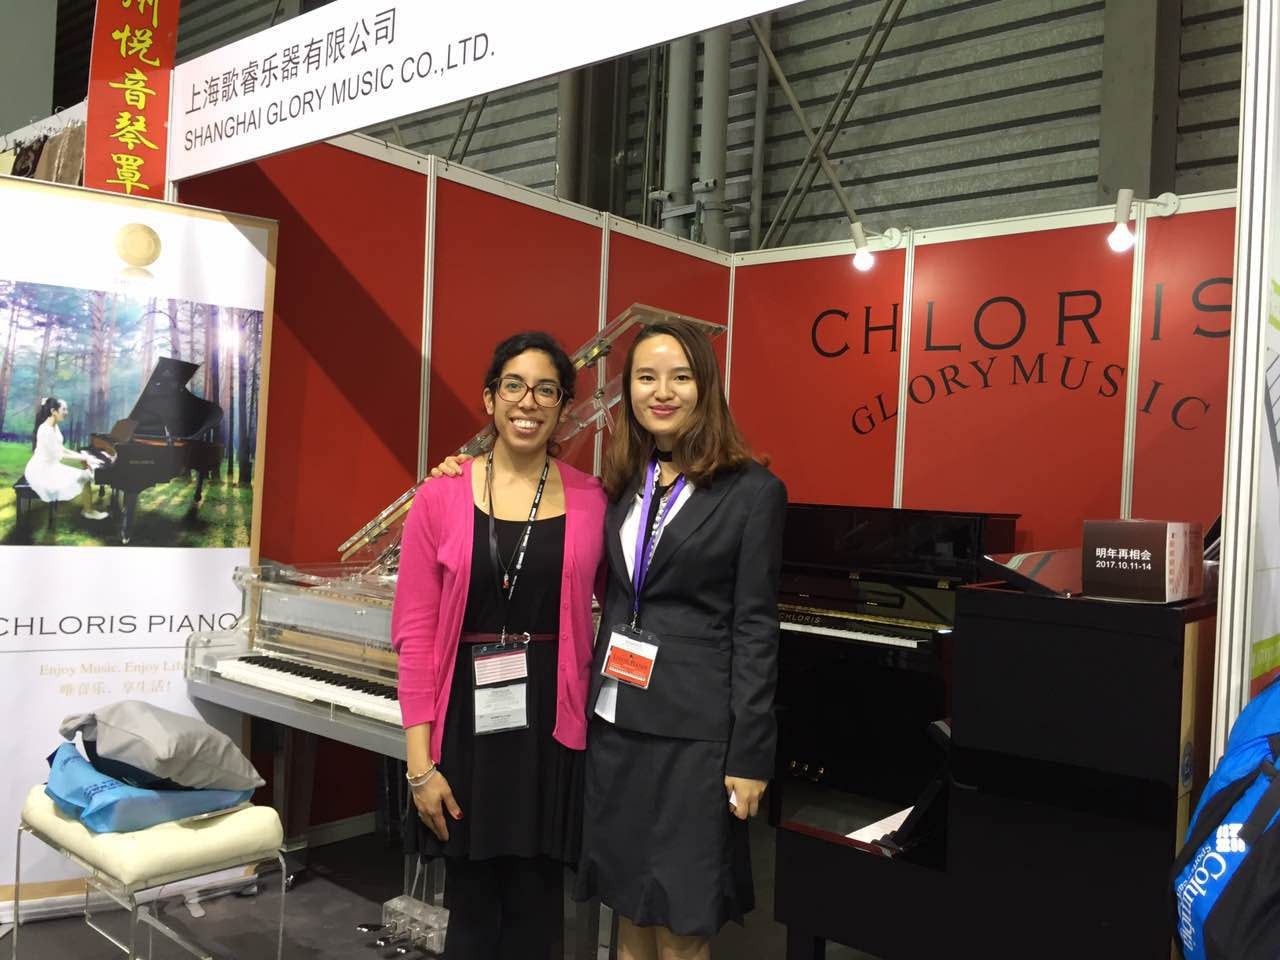 The Shanghai Glory Music Booth